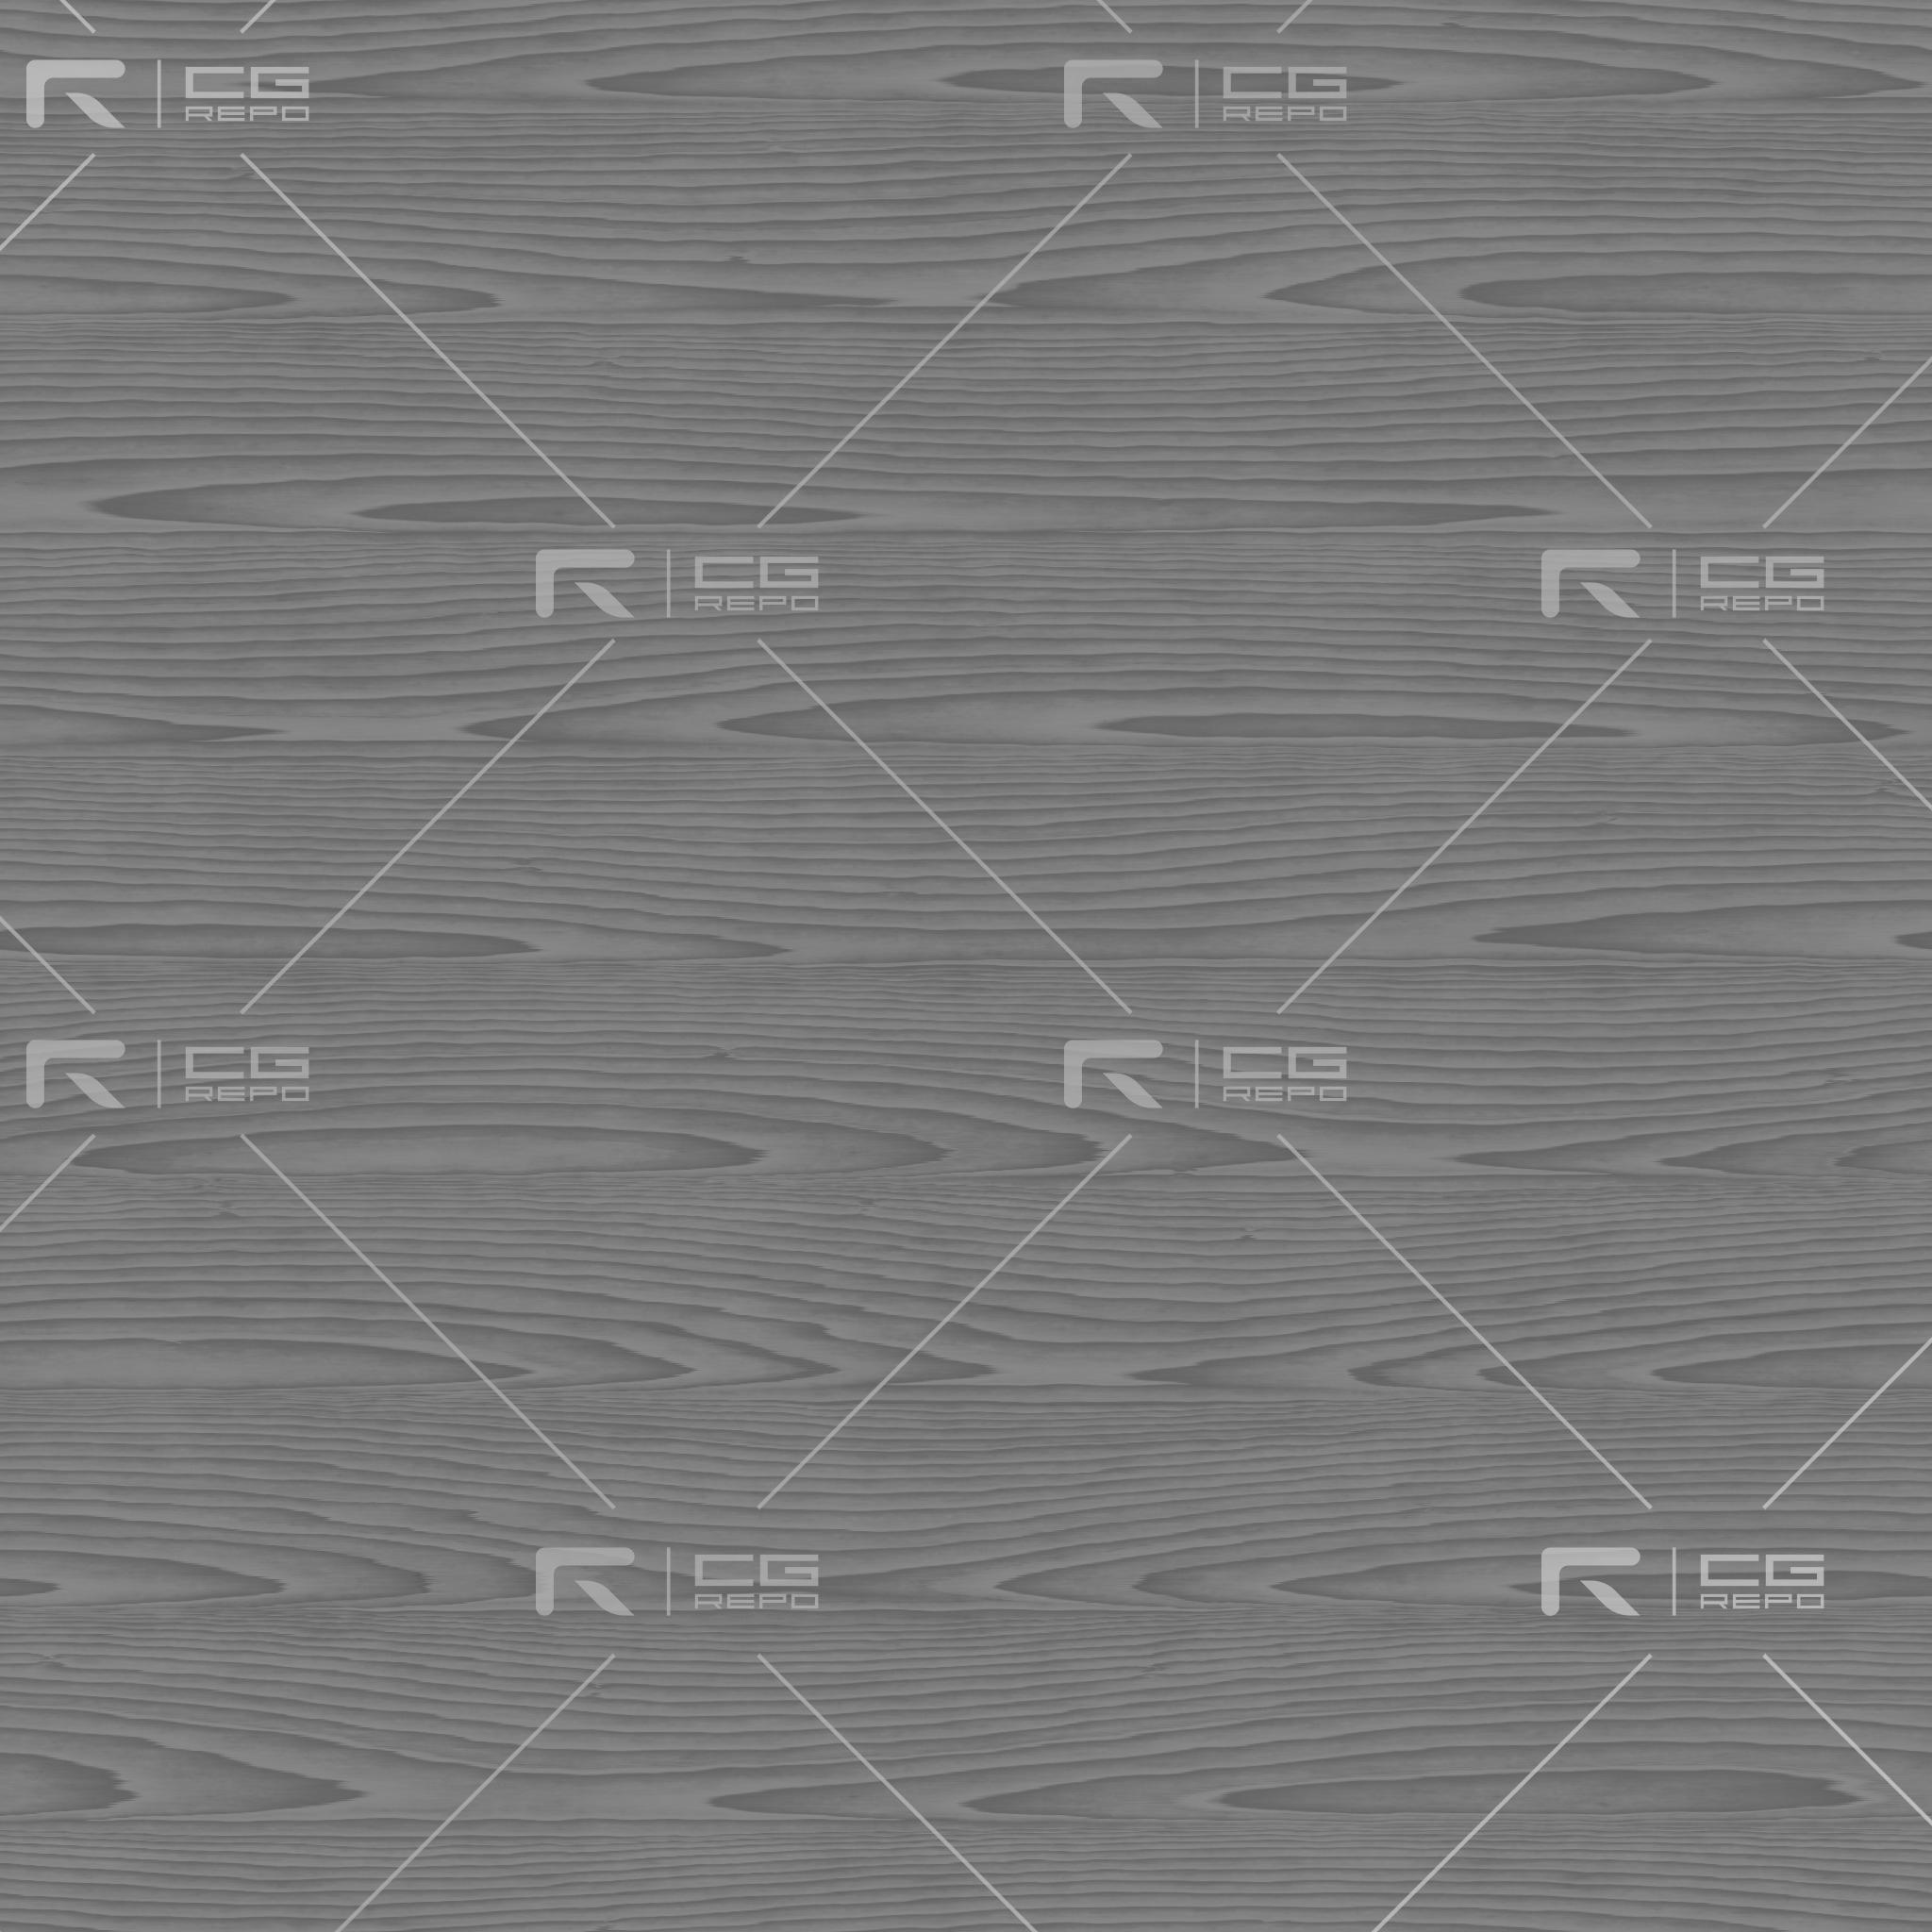 Oak - Painted Grunge Grey - Rift Sawn Roughness Texture